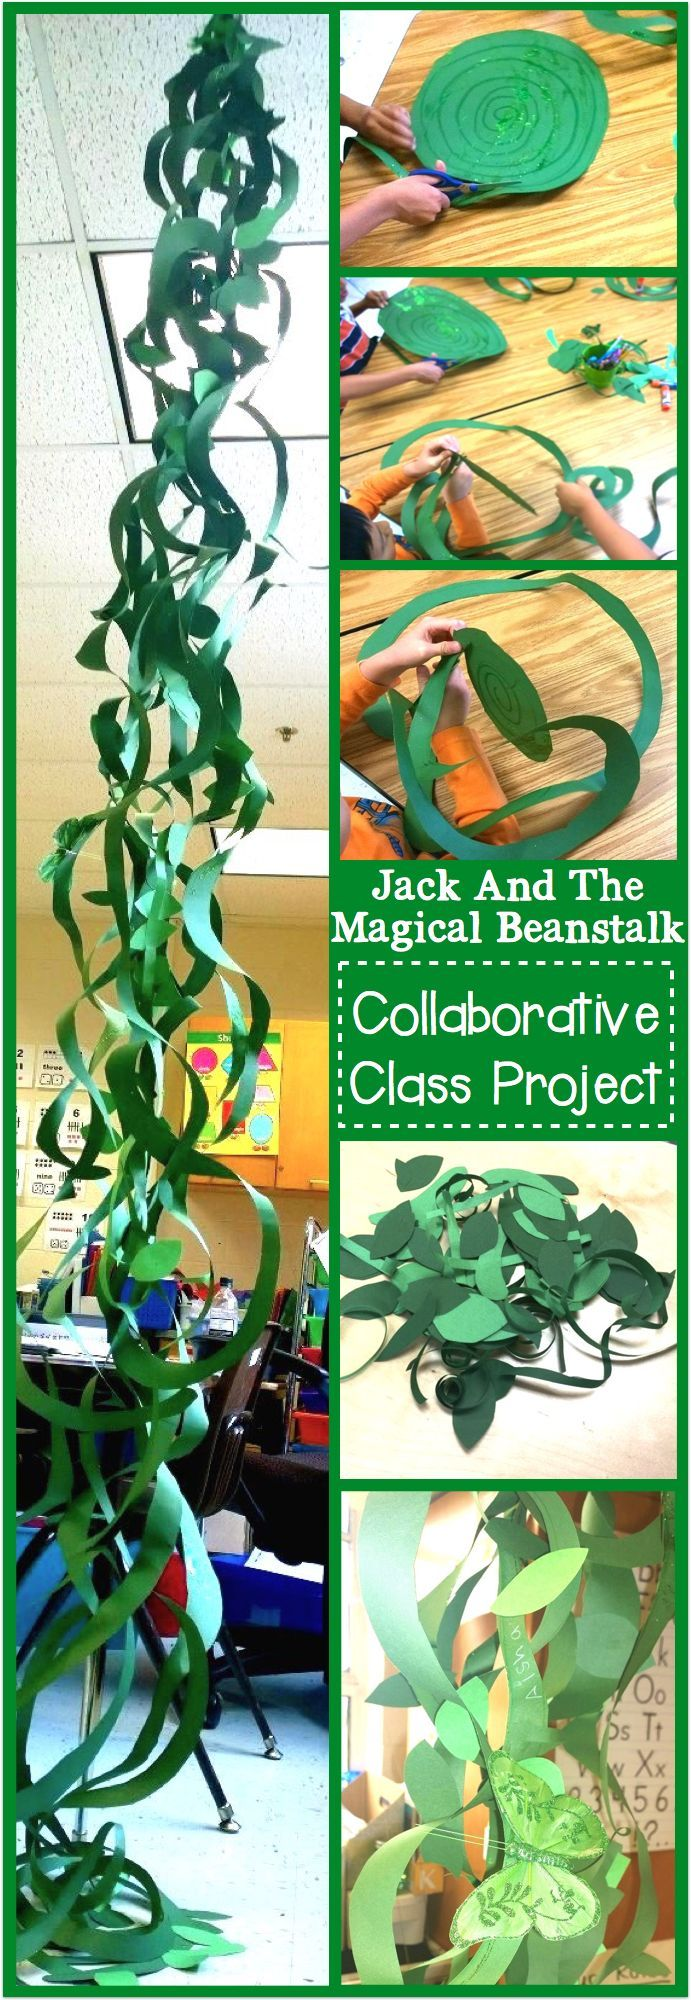 Jack And The Beanstalk Craft ~ Make an oversized beanstalk out of green construction paper! An easy craft even preschoolers can make!